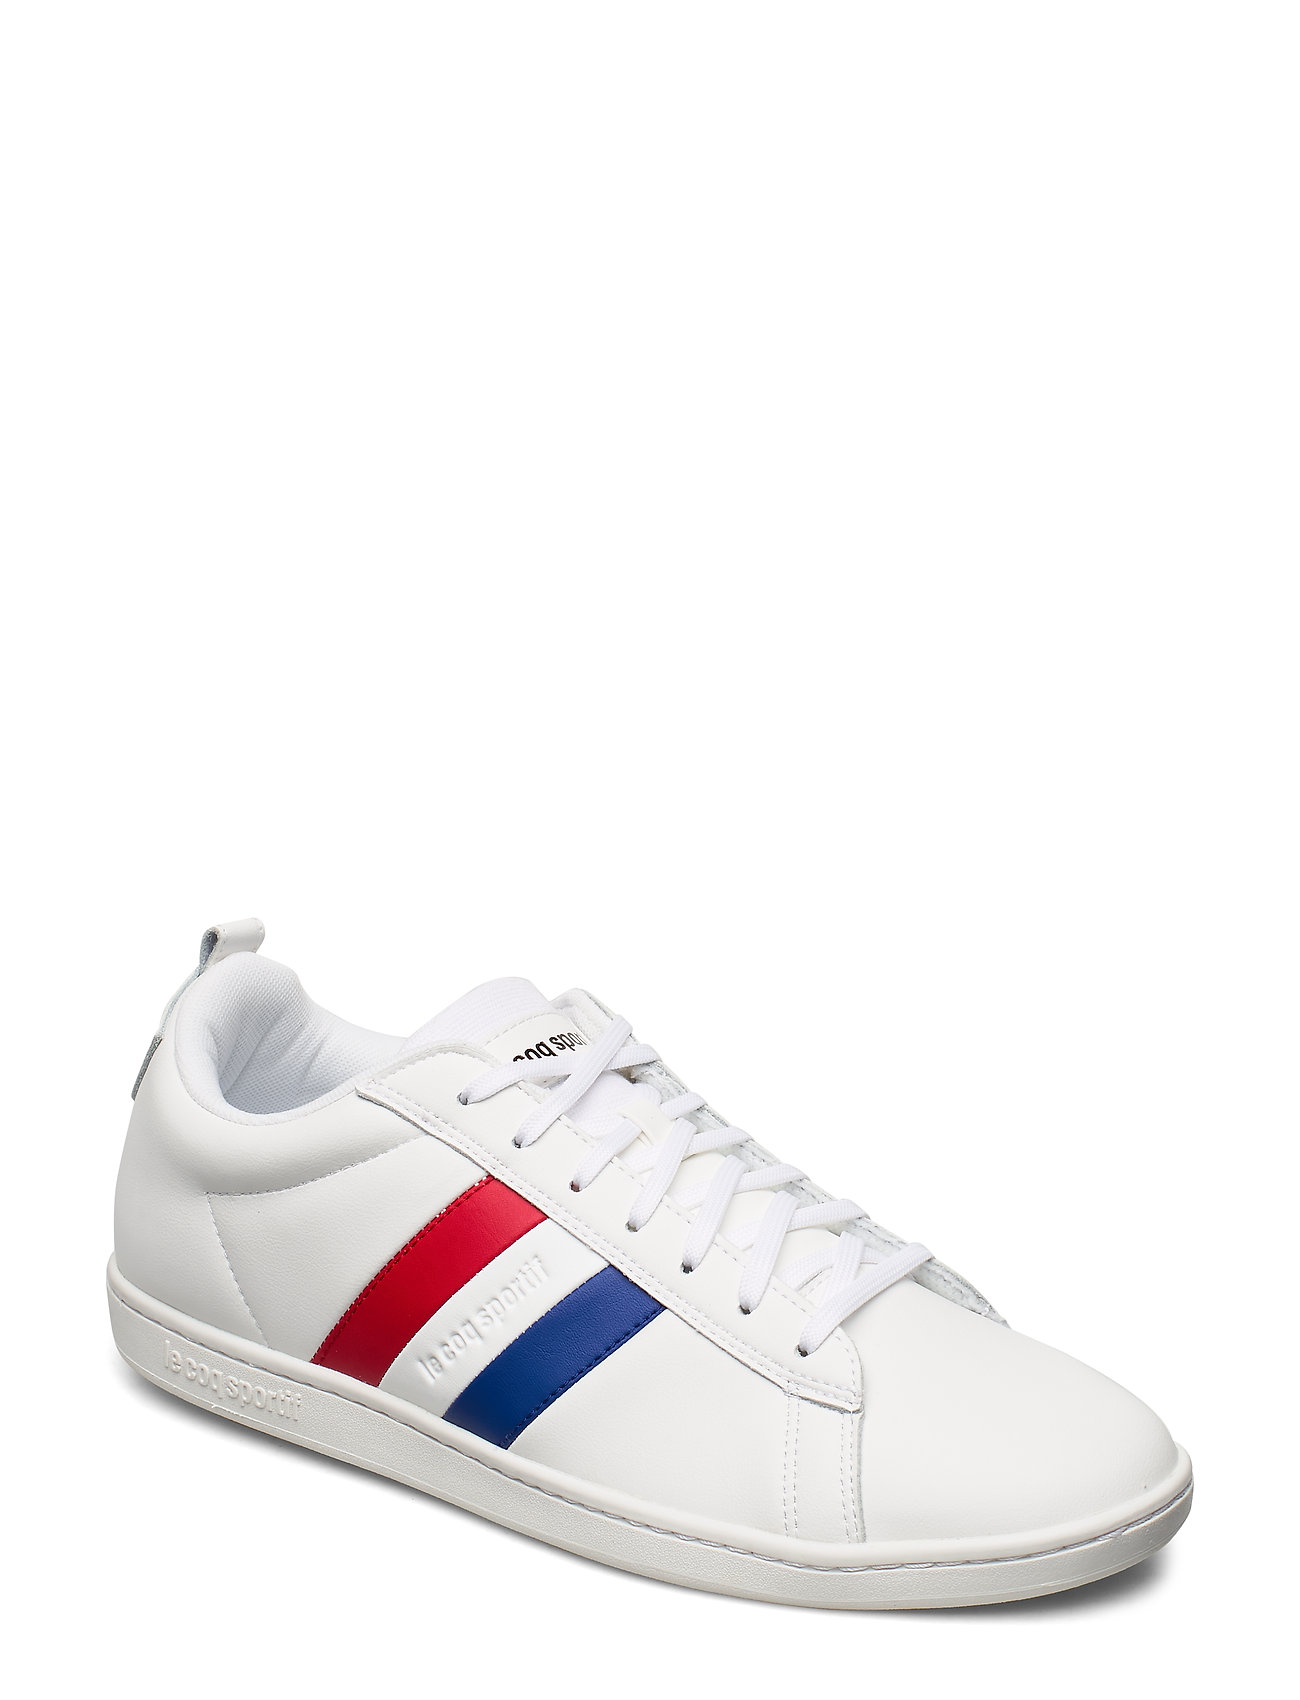 Image of Courtclassic Flag Low-top Sneakers Hvid Le Coq Sportif (3327444393)